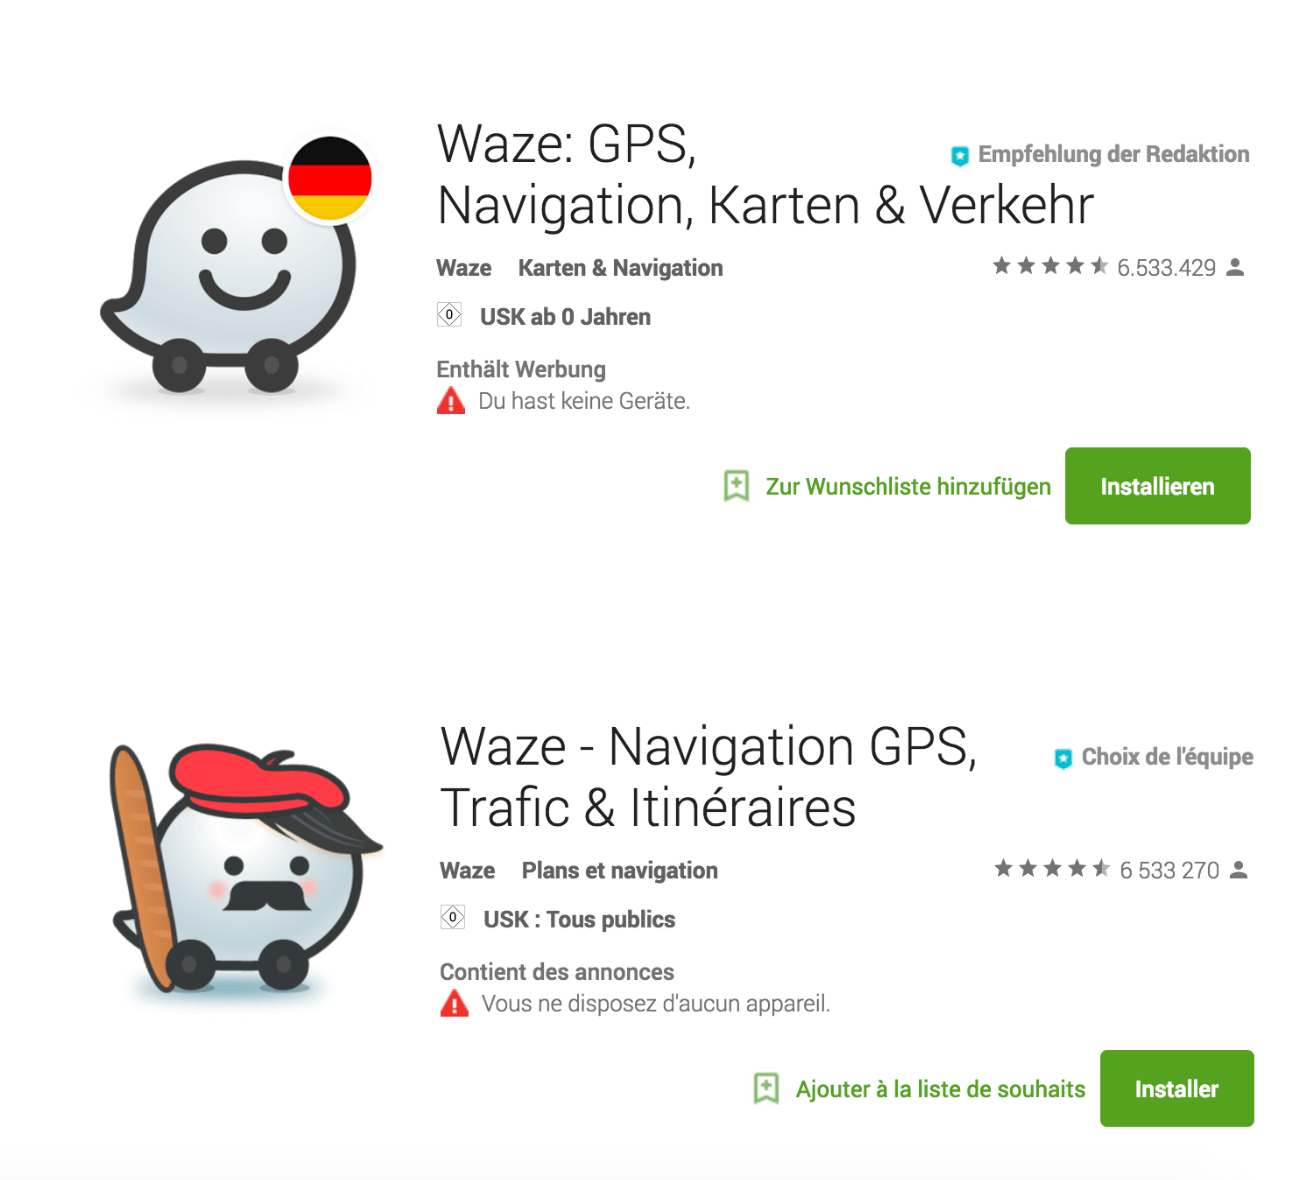 Screenshoss showing Waze adding local relevancy in Germany by adding a flag, but in France going even one step further with a baguette!